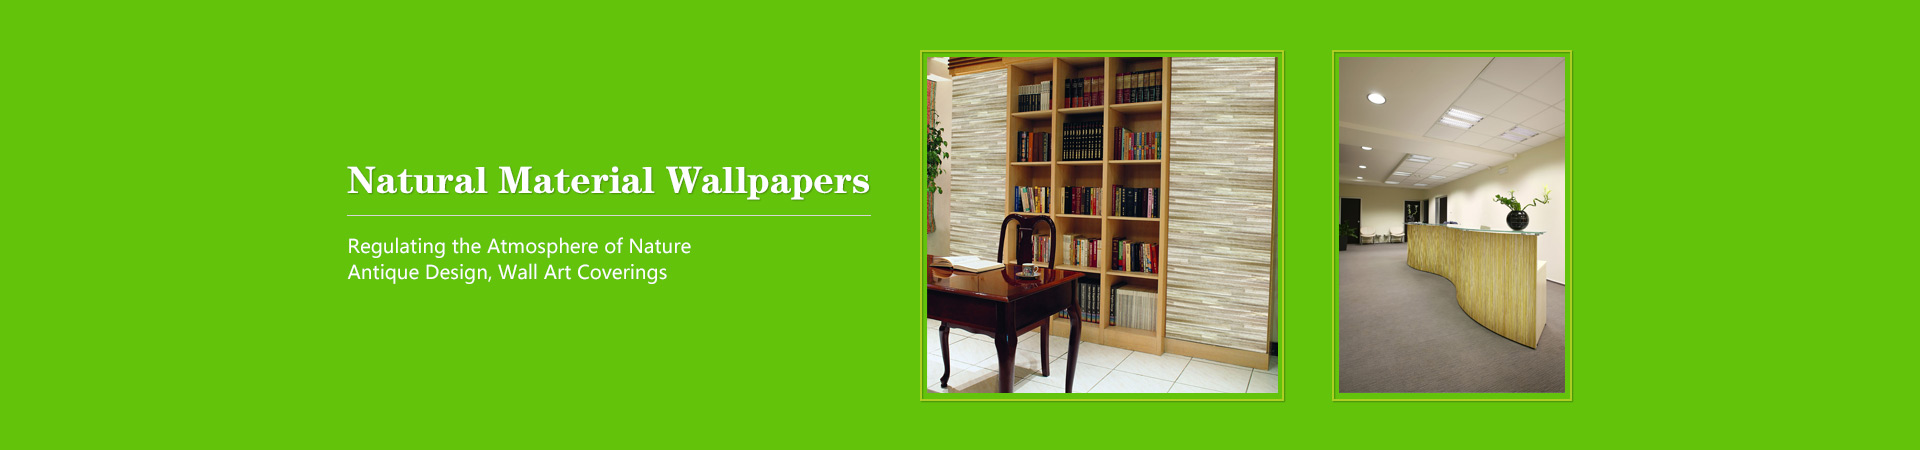 Decorative Wall Coverings Supplier-HK Banner